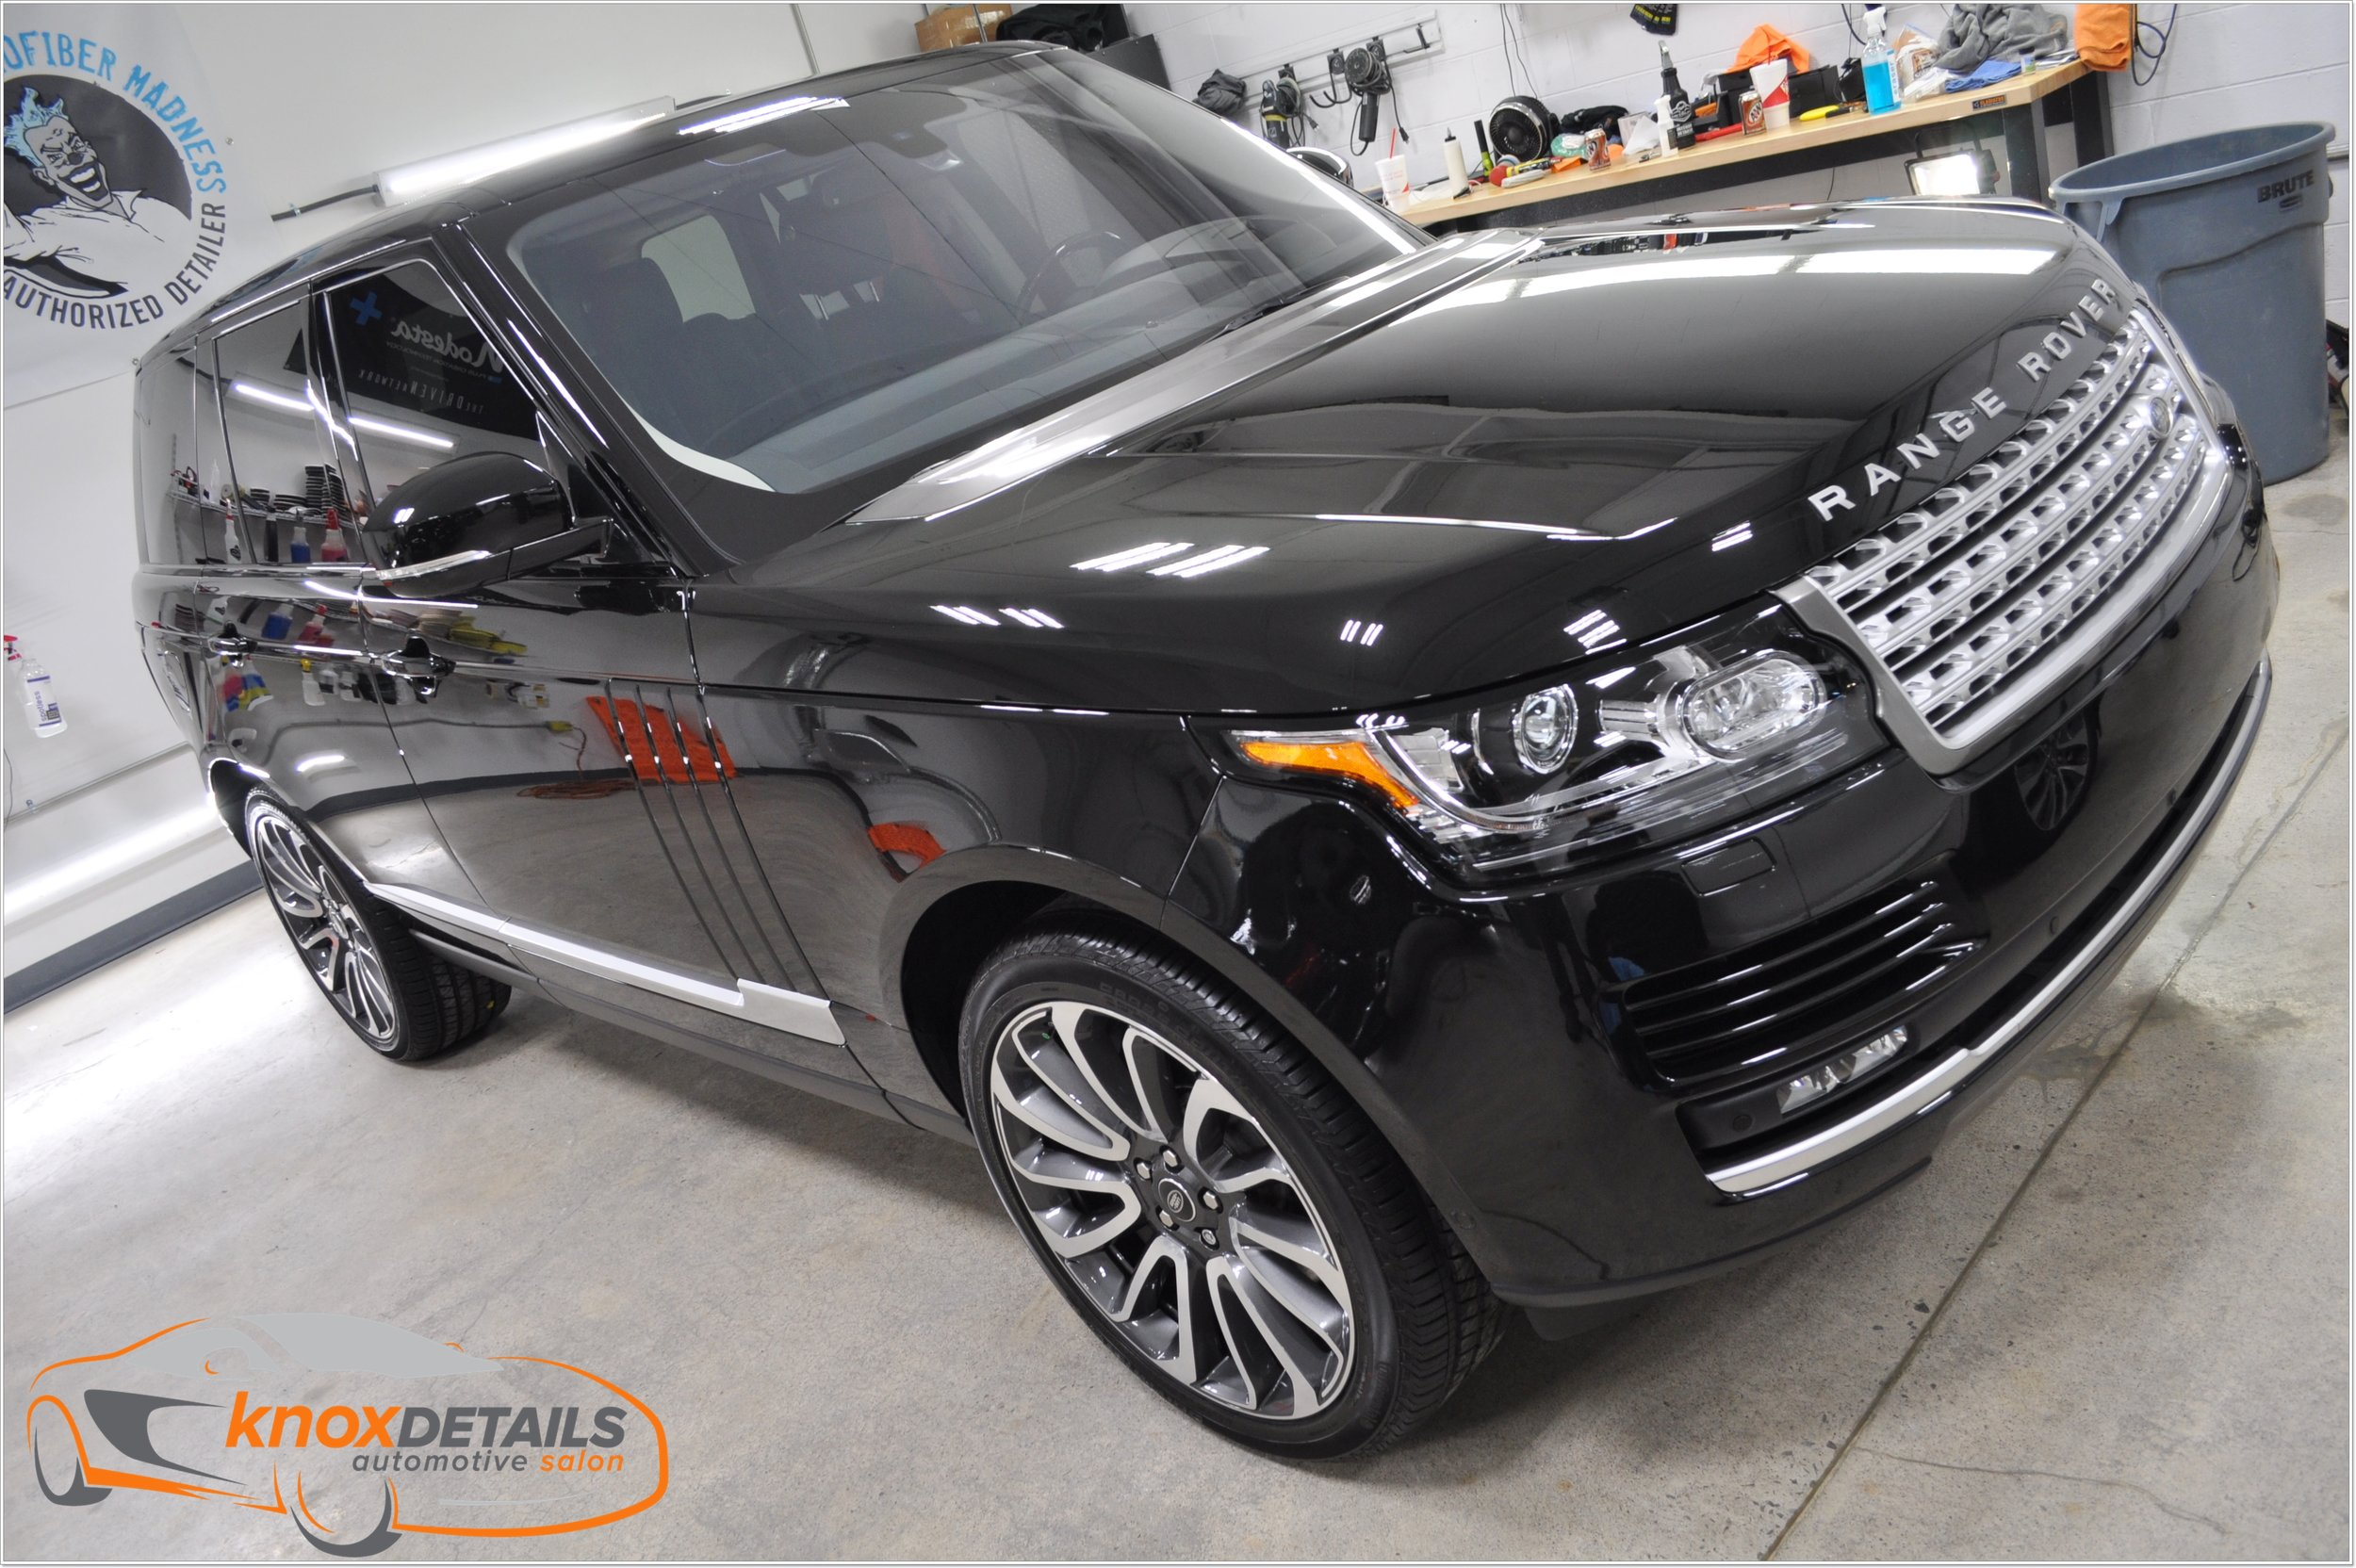 Range Rover properly prepared and protected with Modesta BC-08 Neo-Silica Coating